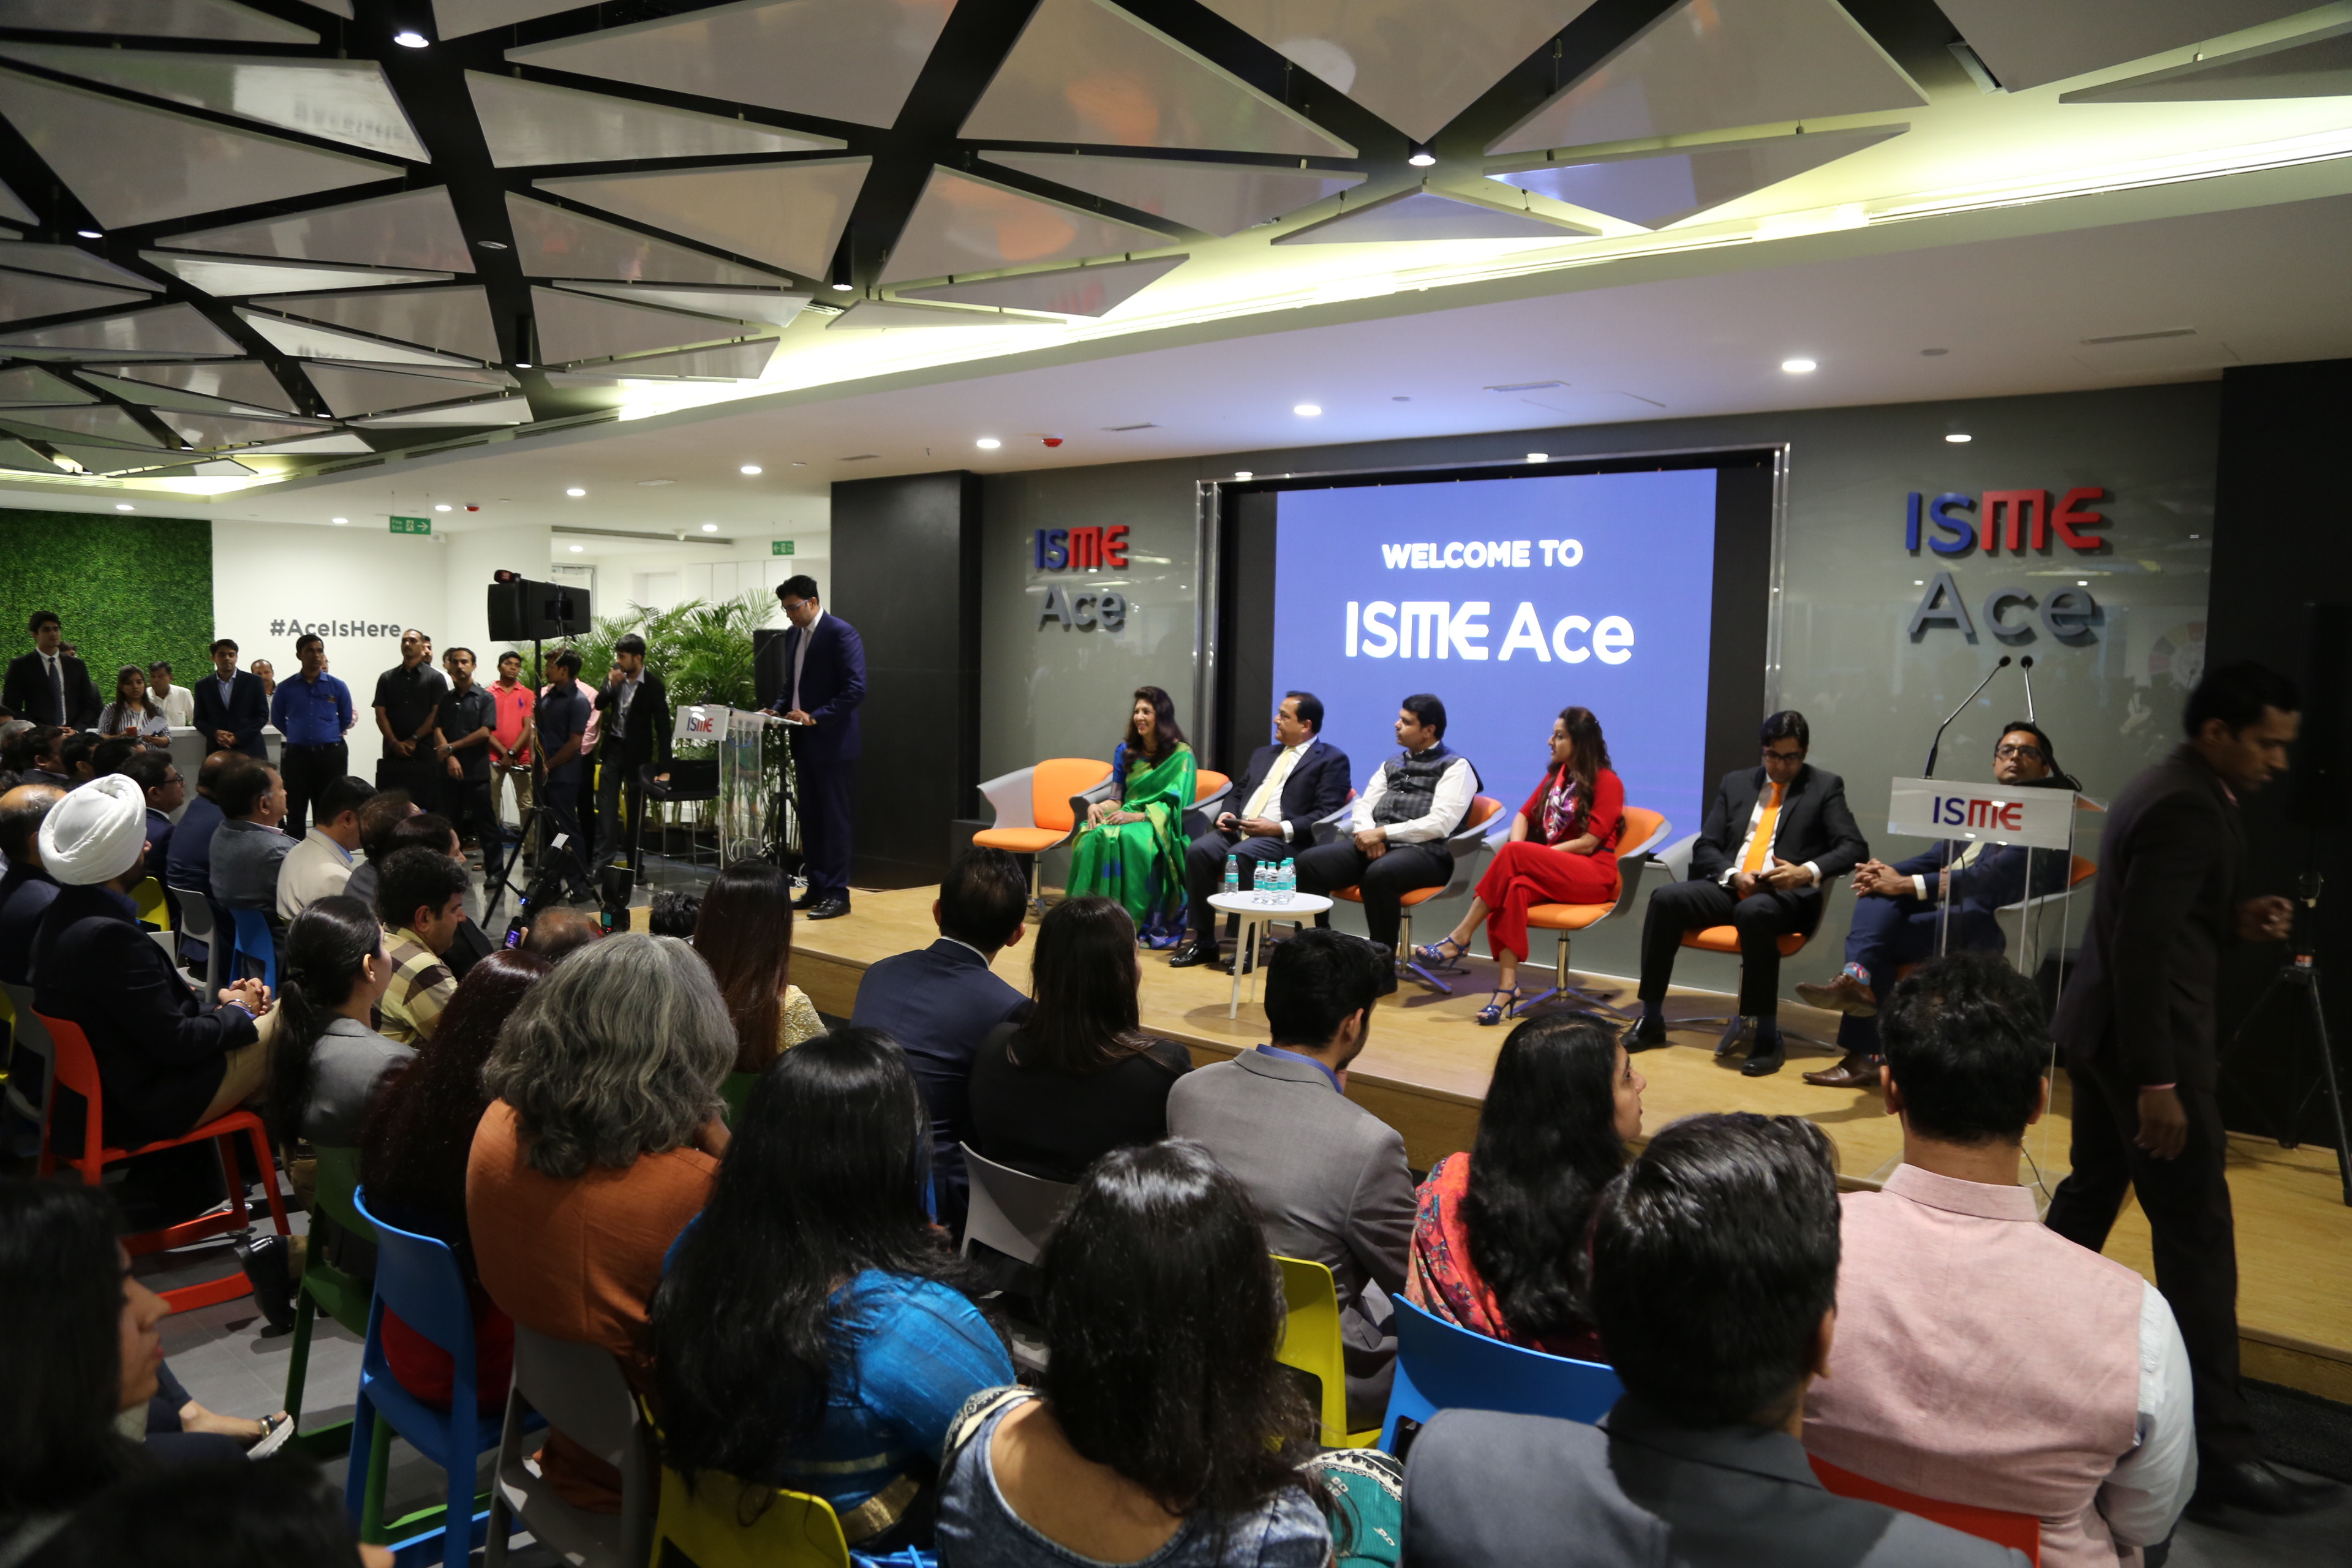 ISME ACE – India's Largest FinTech Accelerator Program Inaugurated by CM of Maharashtra Devendra Fadnavis